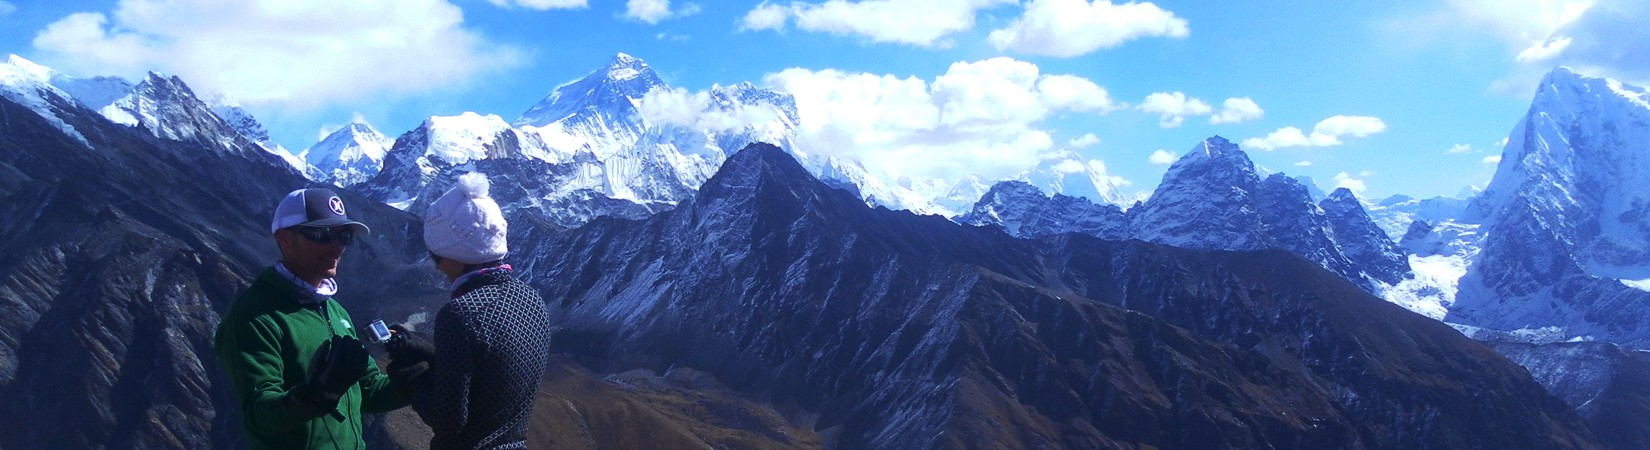 everest cho lapass trek with gokyo lake